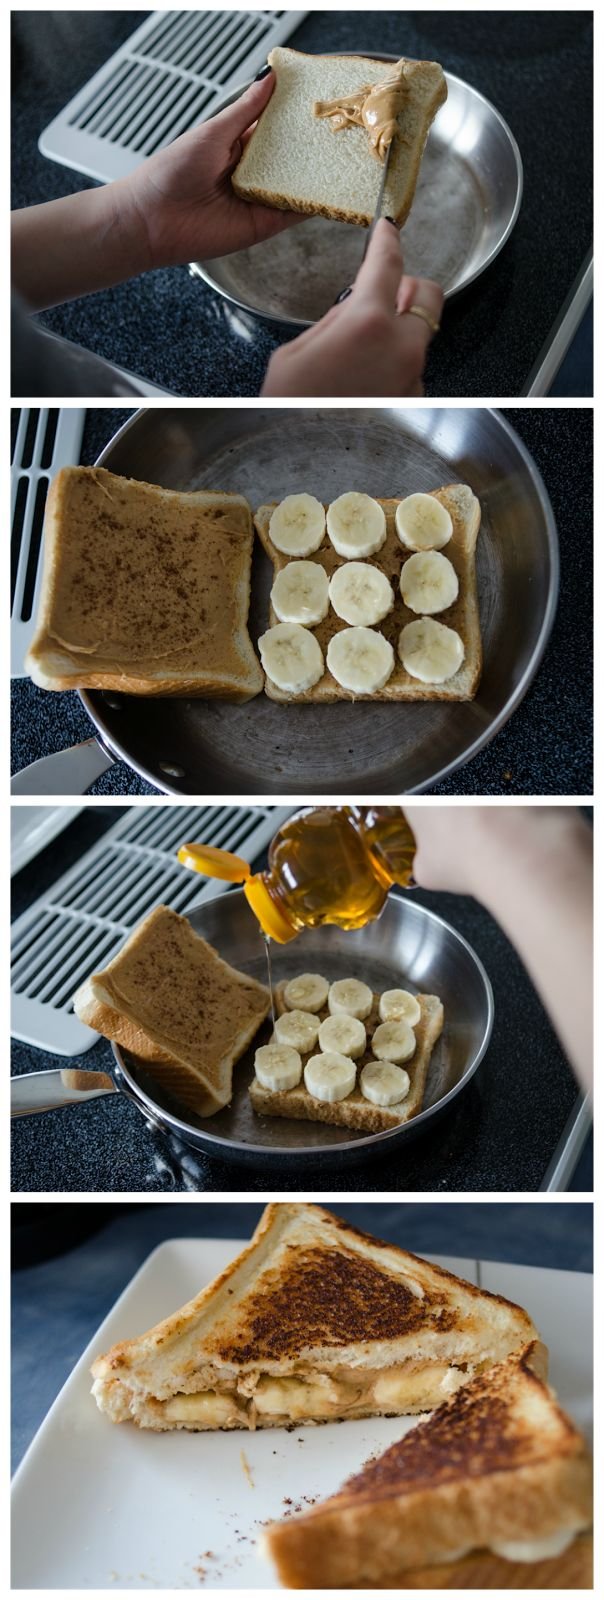 Cinnamon peanut butter honey banana grilled sandwich.....yes, please!